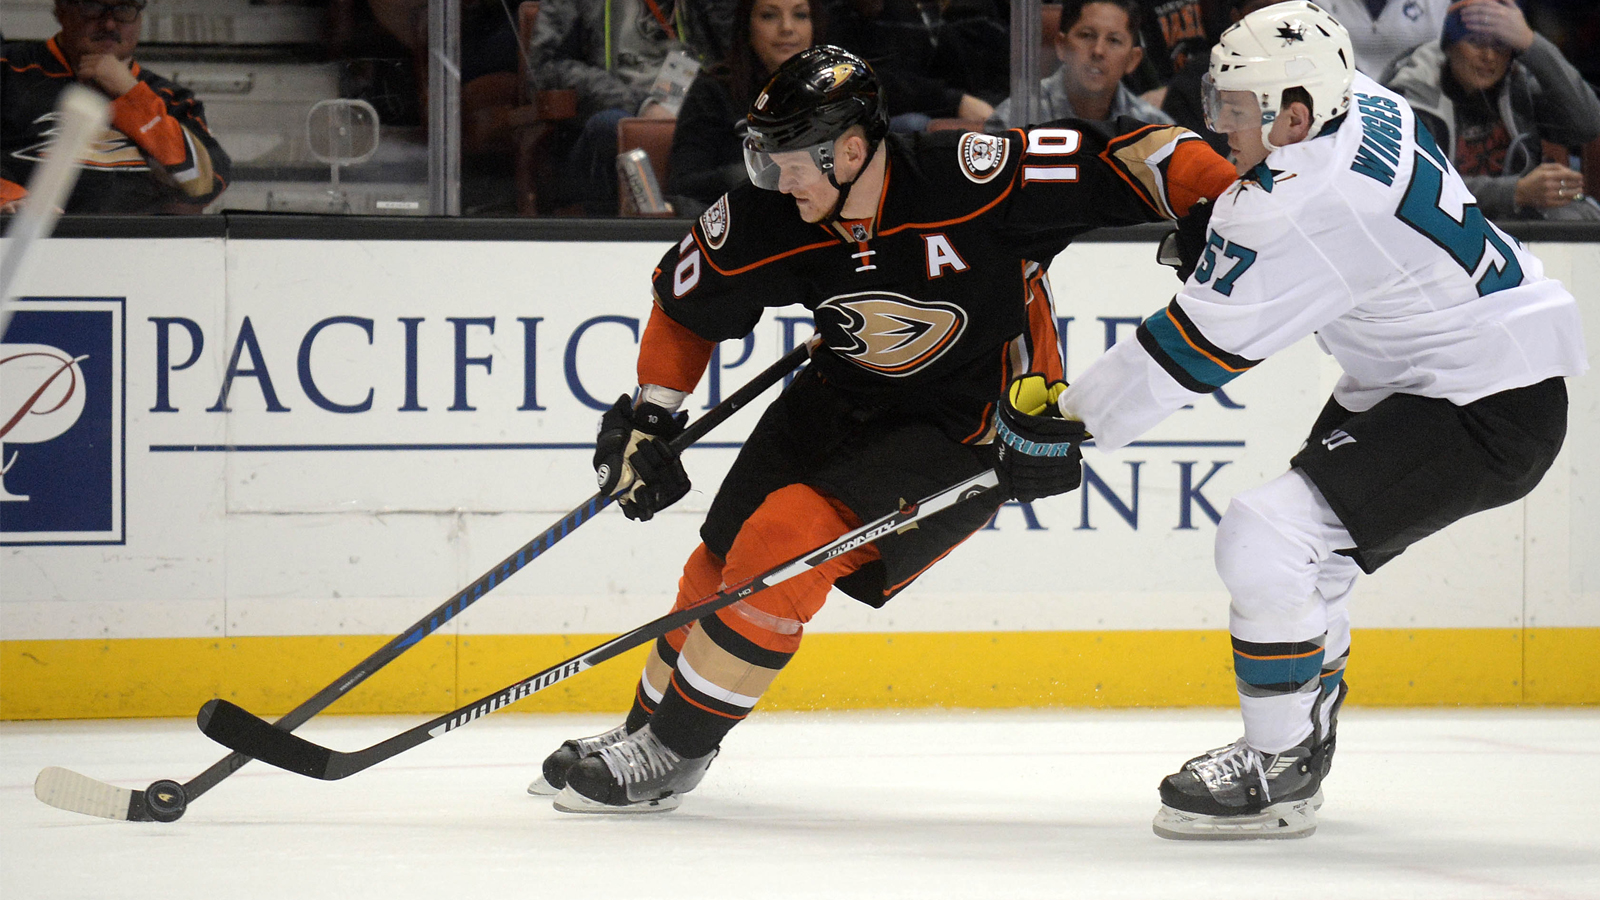 Paths of Pacific Division powers Ducks, Sharks merge again Tuesday night